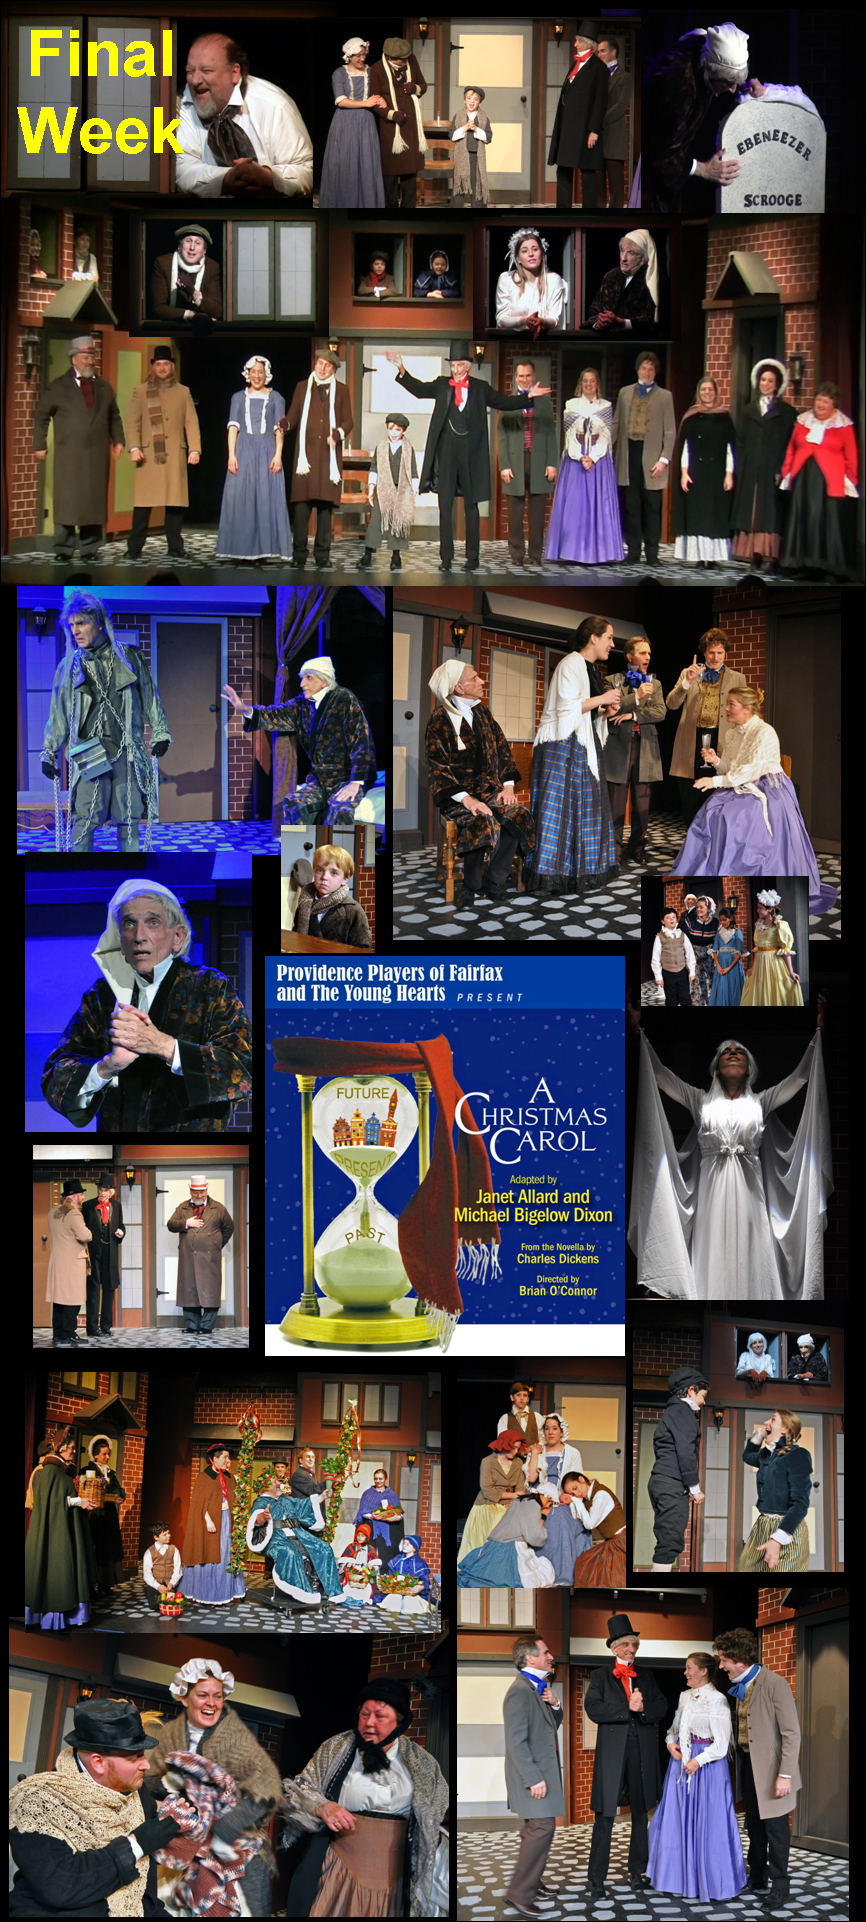 A Christmas Carol Montage By Chip Gertzog, Providence Players